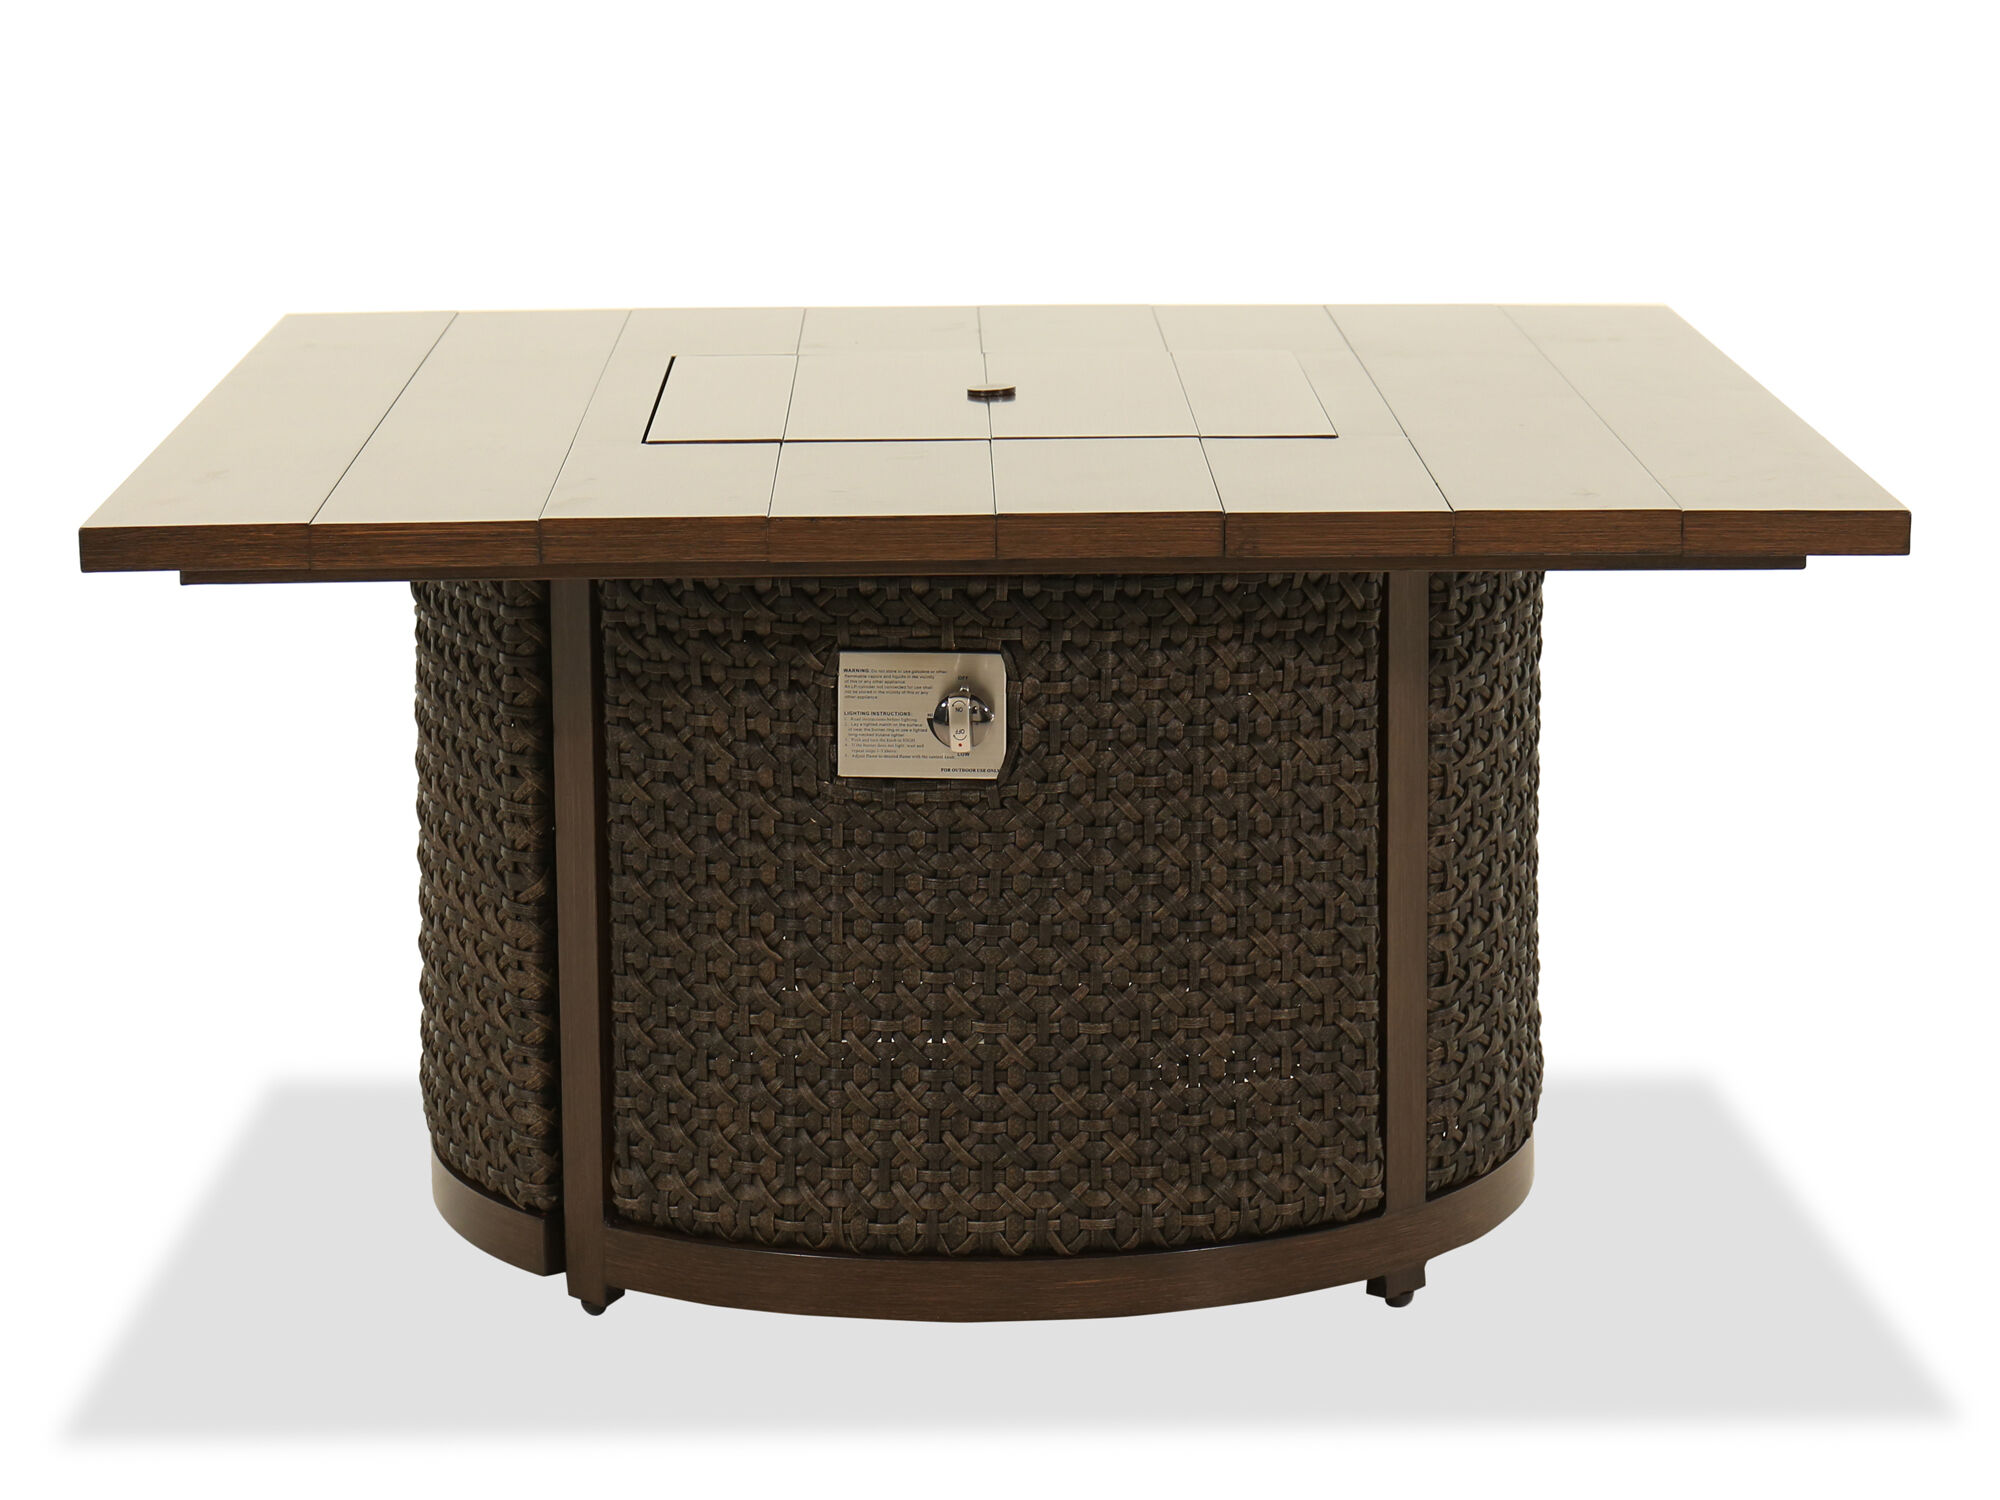 Beau Images Woven Fire Pit Coffee Table In Ebony ...